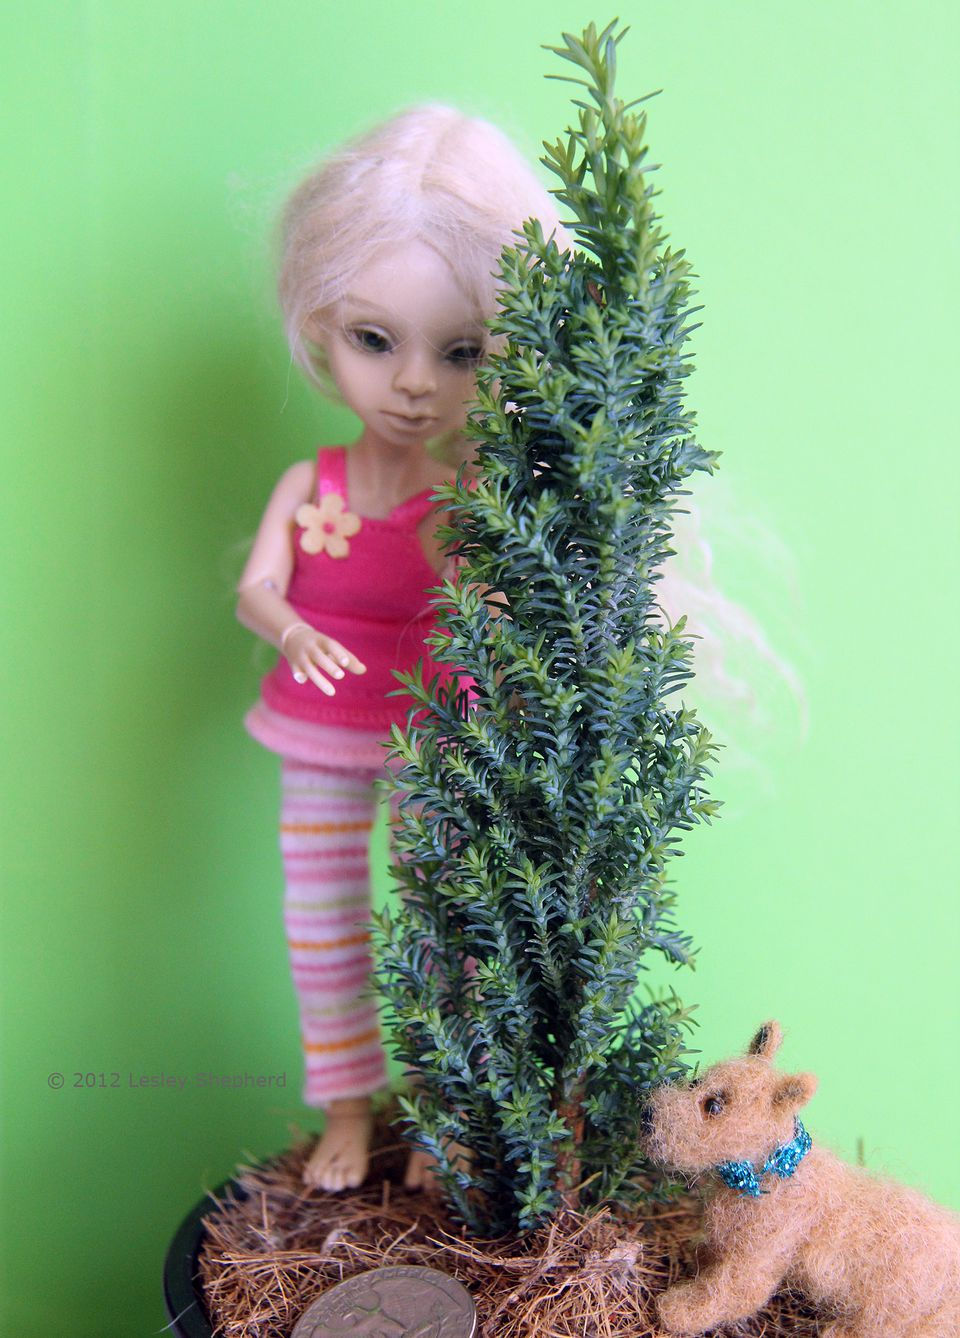 C.lawsoniana 'Ellwoods Pillar' With a 1:12 Scale Ball Jointed Doll For Scale